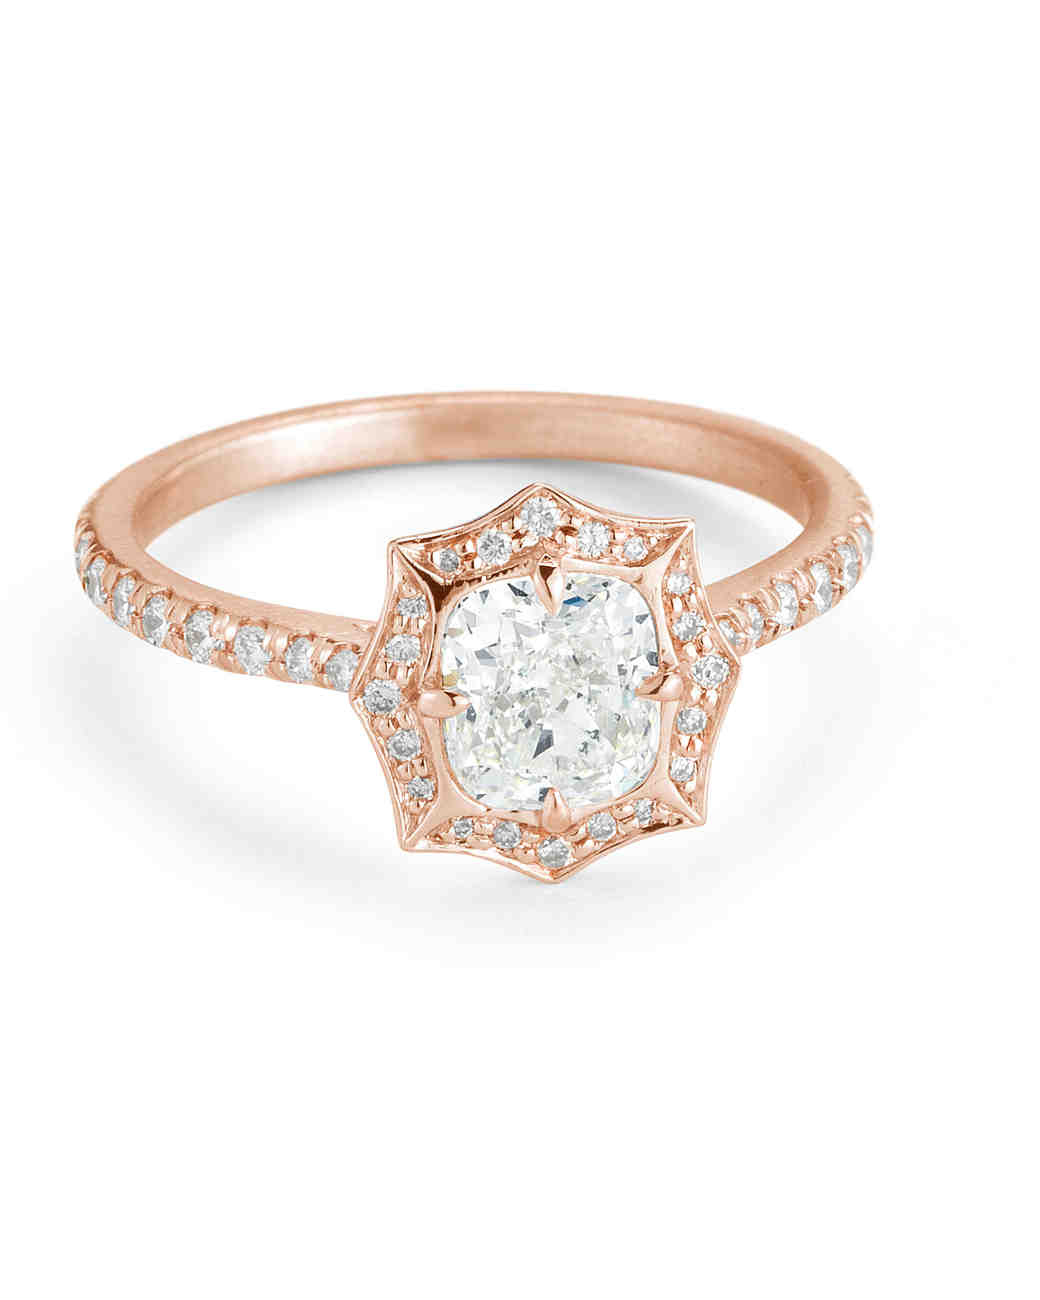 "Forevermark by Jade Trau ""Mabel"" Ring rose gold setting and cushion-cut diamond"